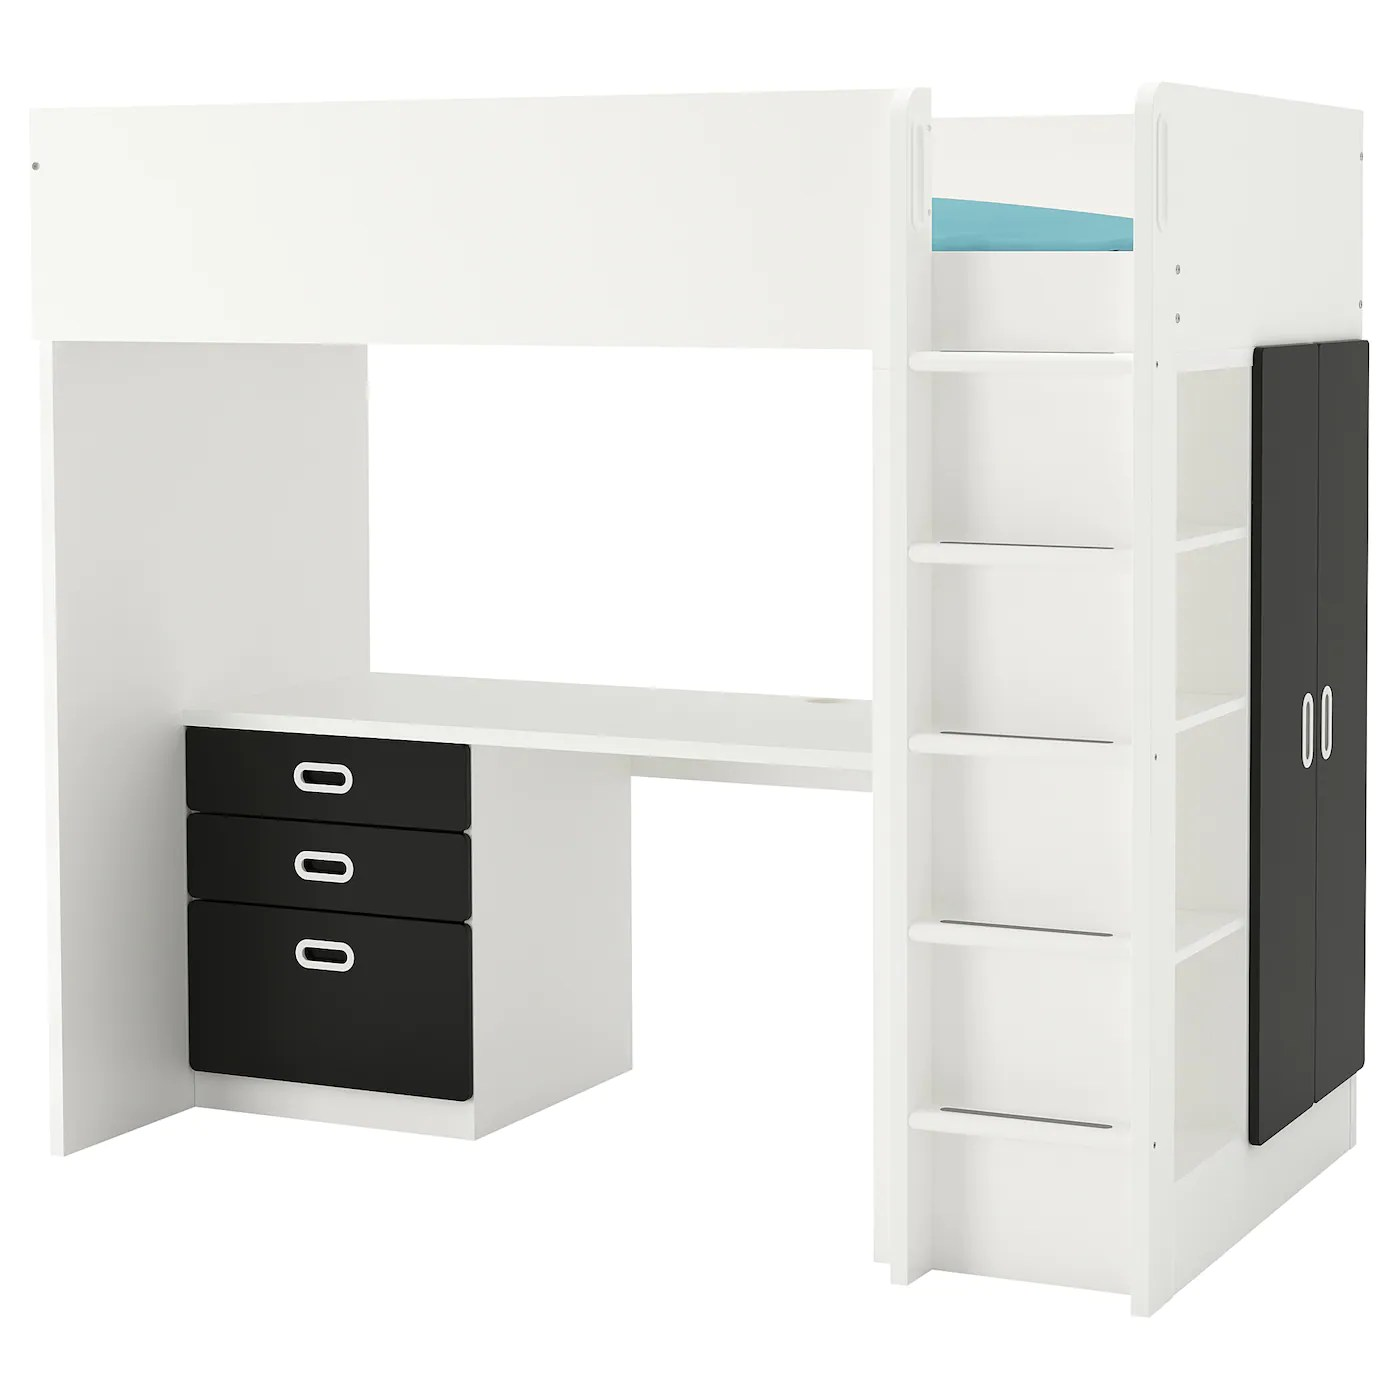 Desk And Bed Combo Fritids Stuva Loft Bed Combo W 3 Drawers 2 Doors White Blackboard Surface